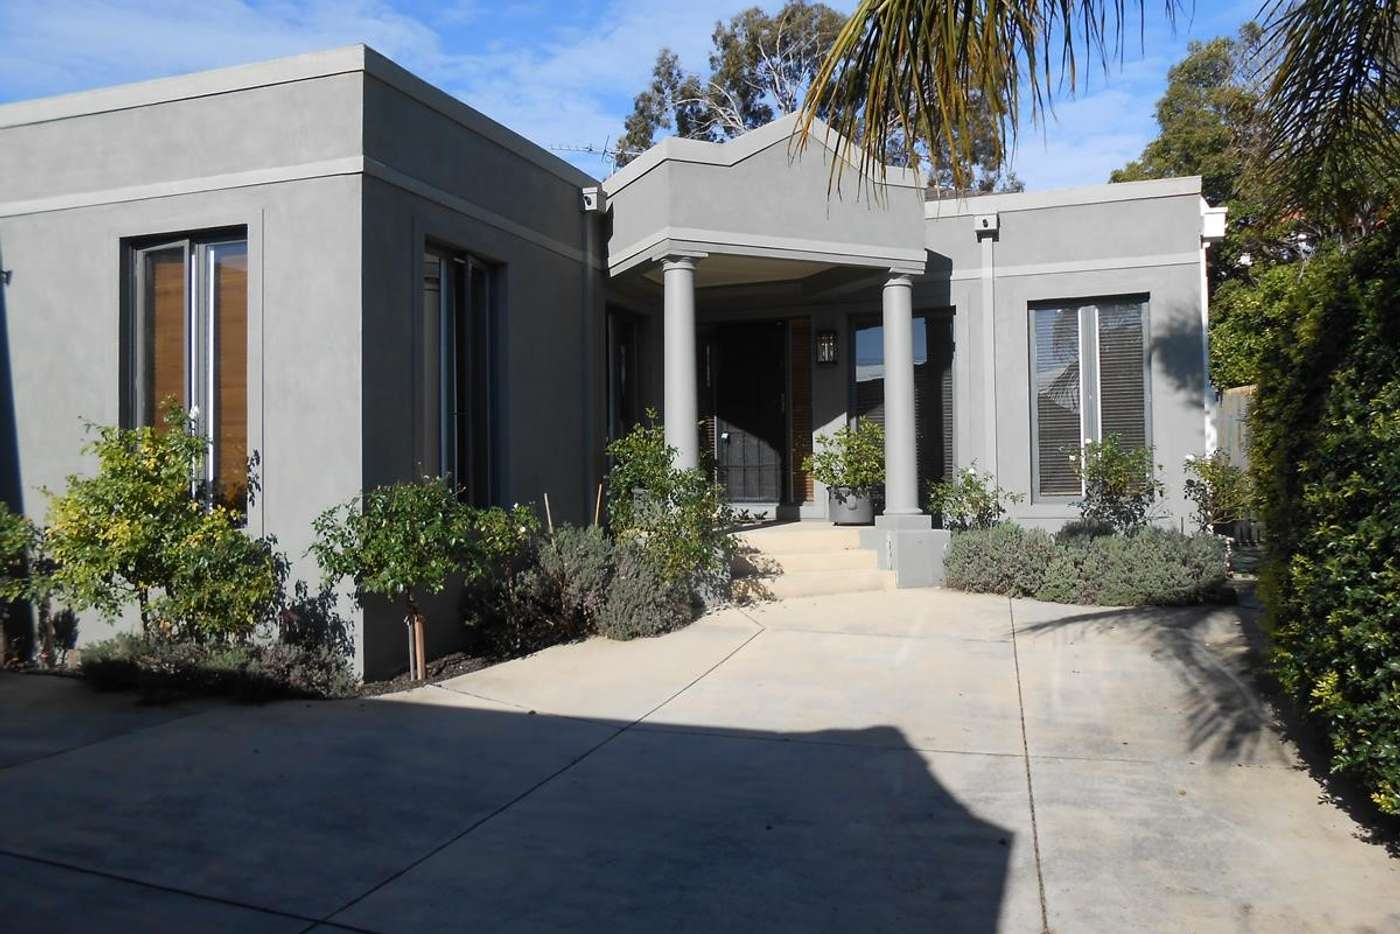 Main view of Homely house listing, 2/10 Scotts Street, Bentleigh VIC 3204